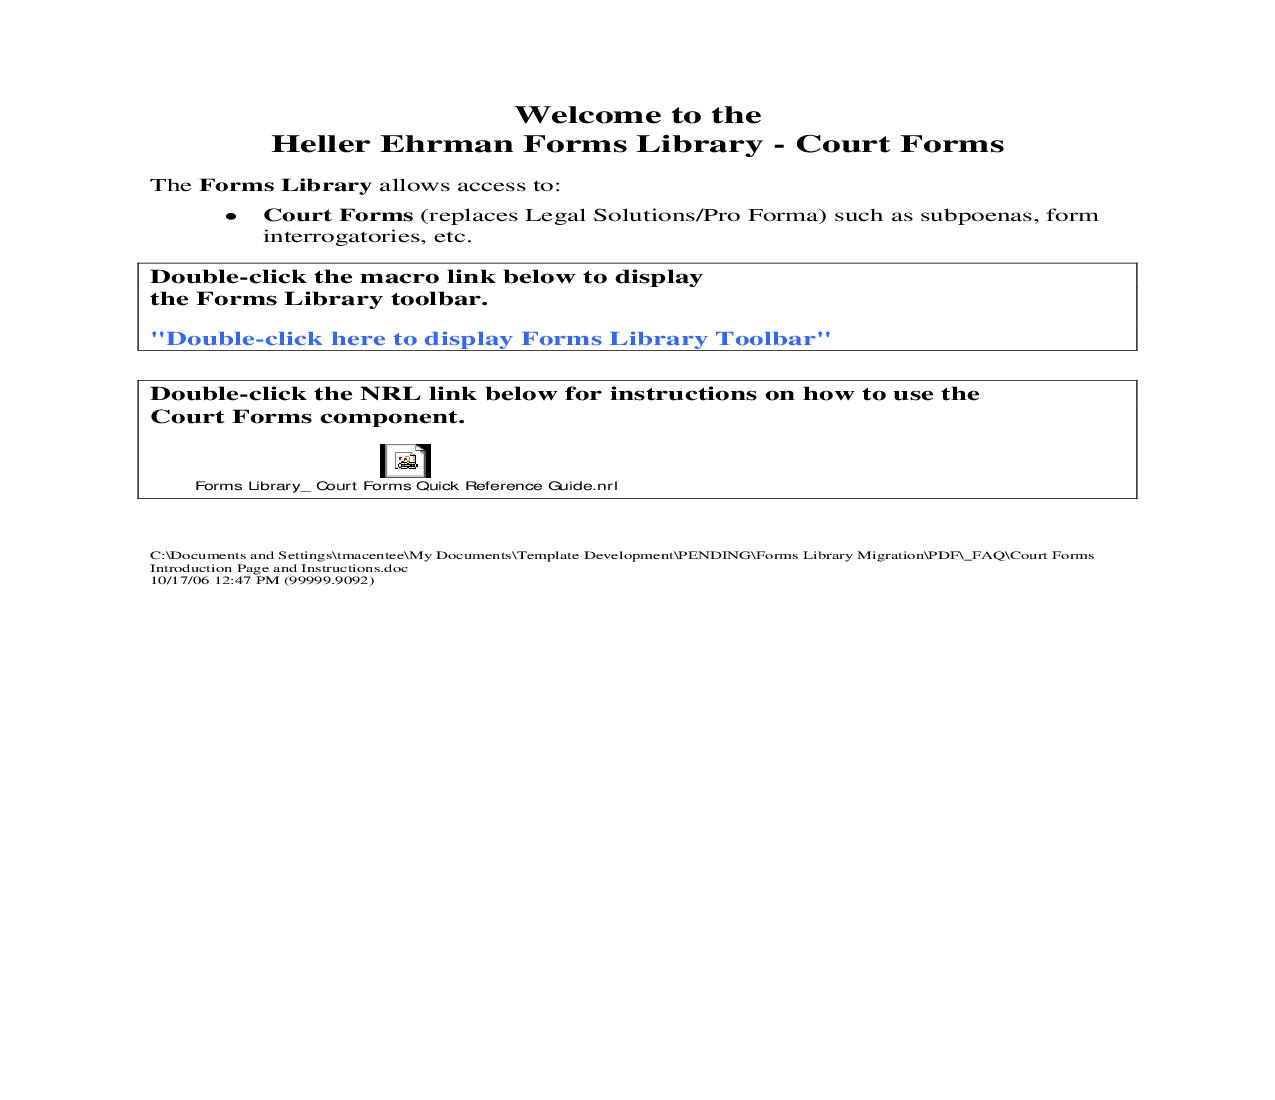 Court Forms Introduction Page and Instructions | Pdf Doc Docx | Heller Ehrman